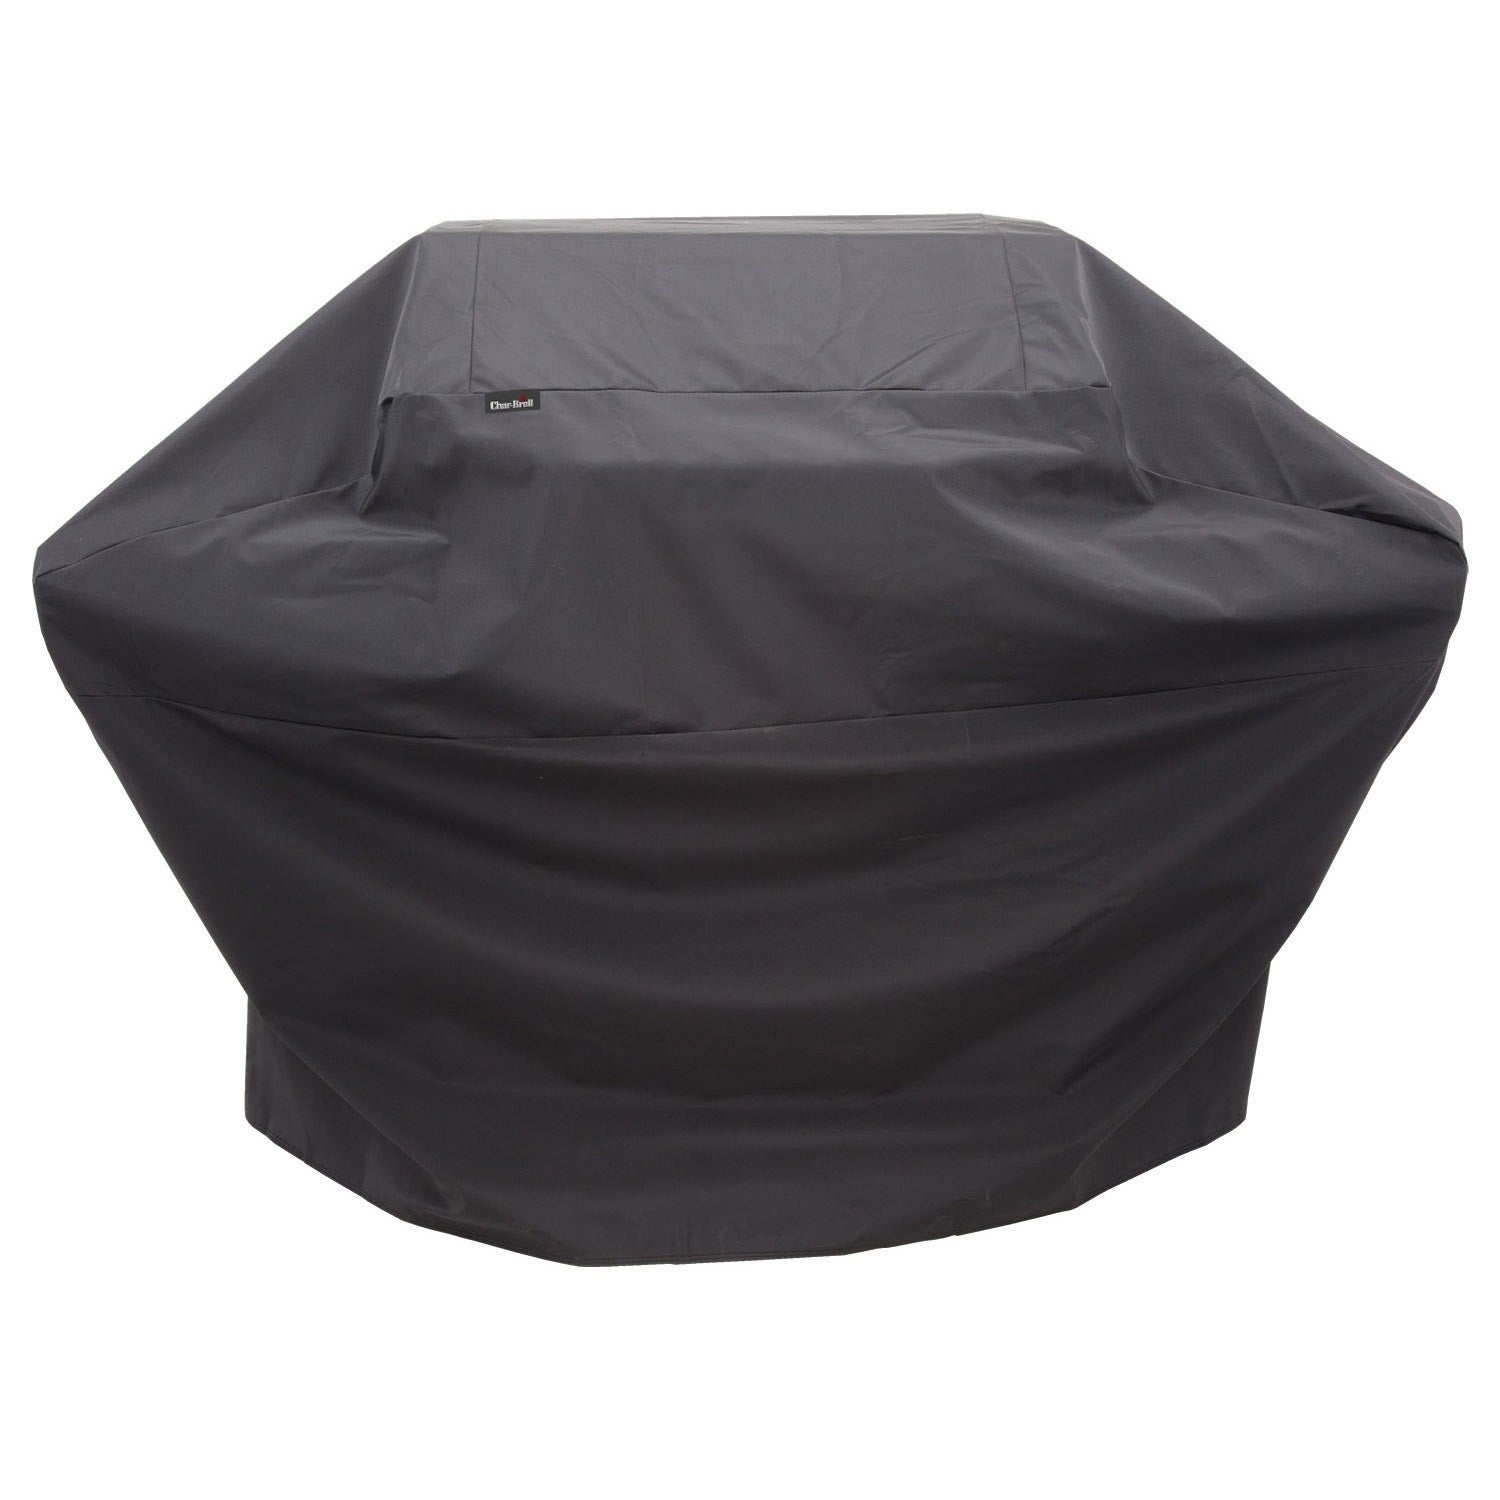 Char Broil Large 3 4 Burner Performance Grill Cover Free Shipping On Orders Over 45 26389278